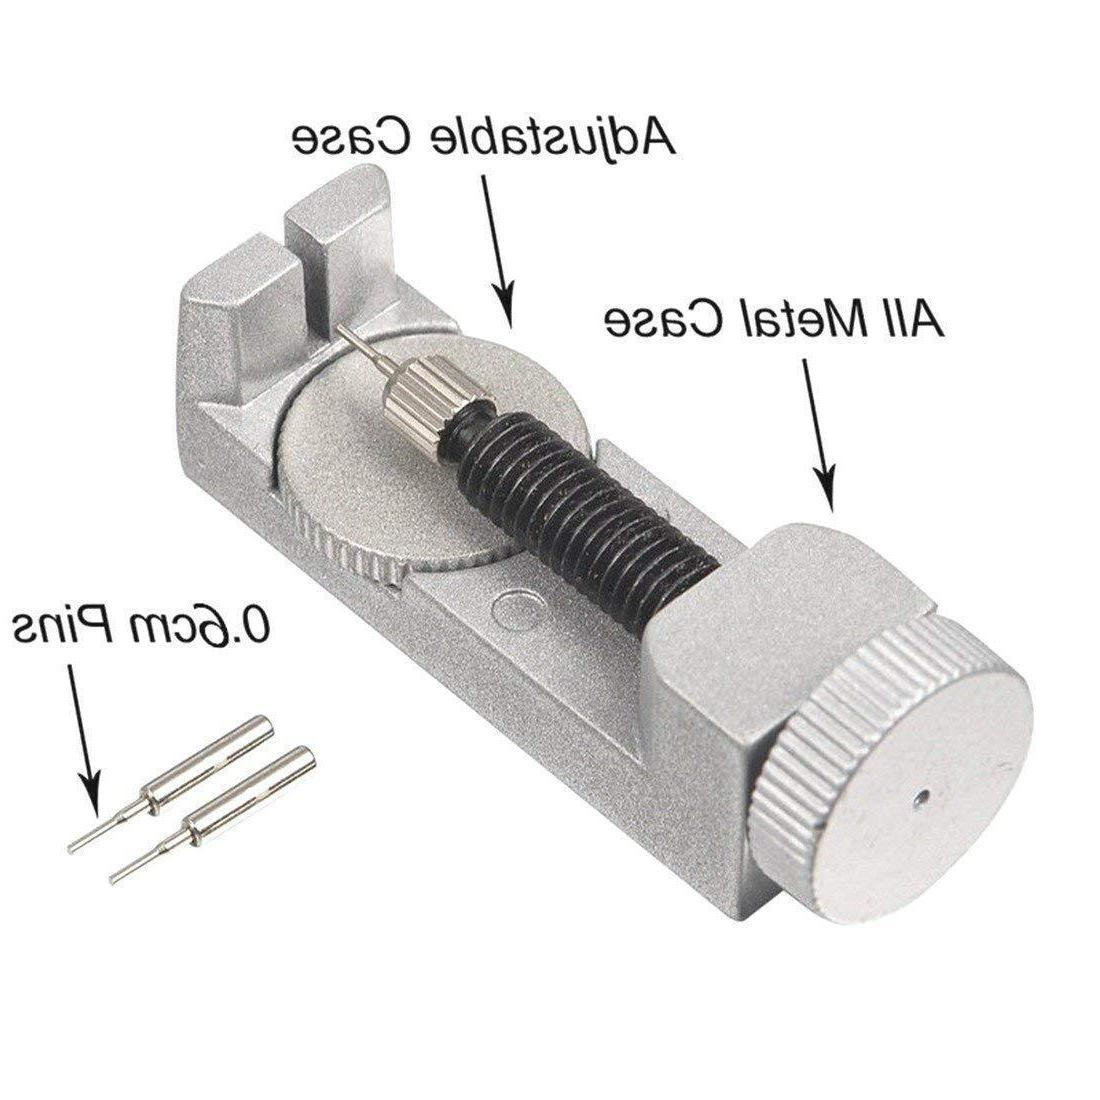 Metal Strap Bracelet Pin Remover Repair Kit US